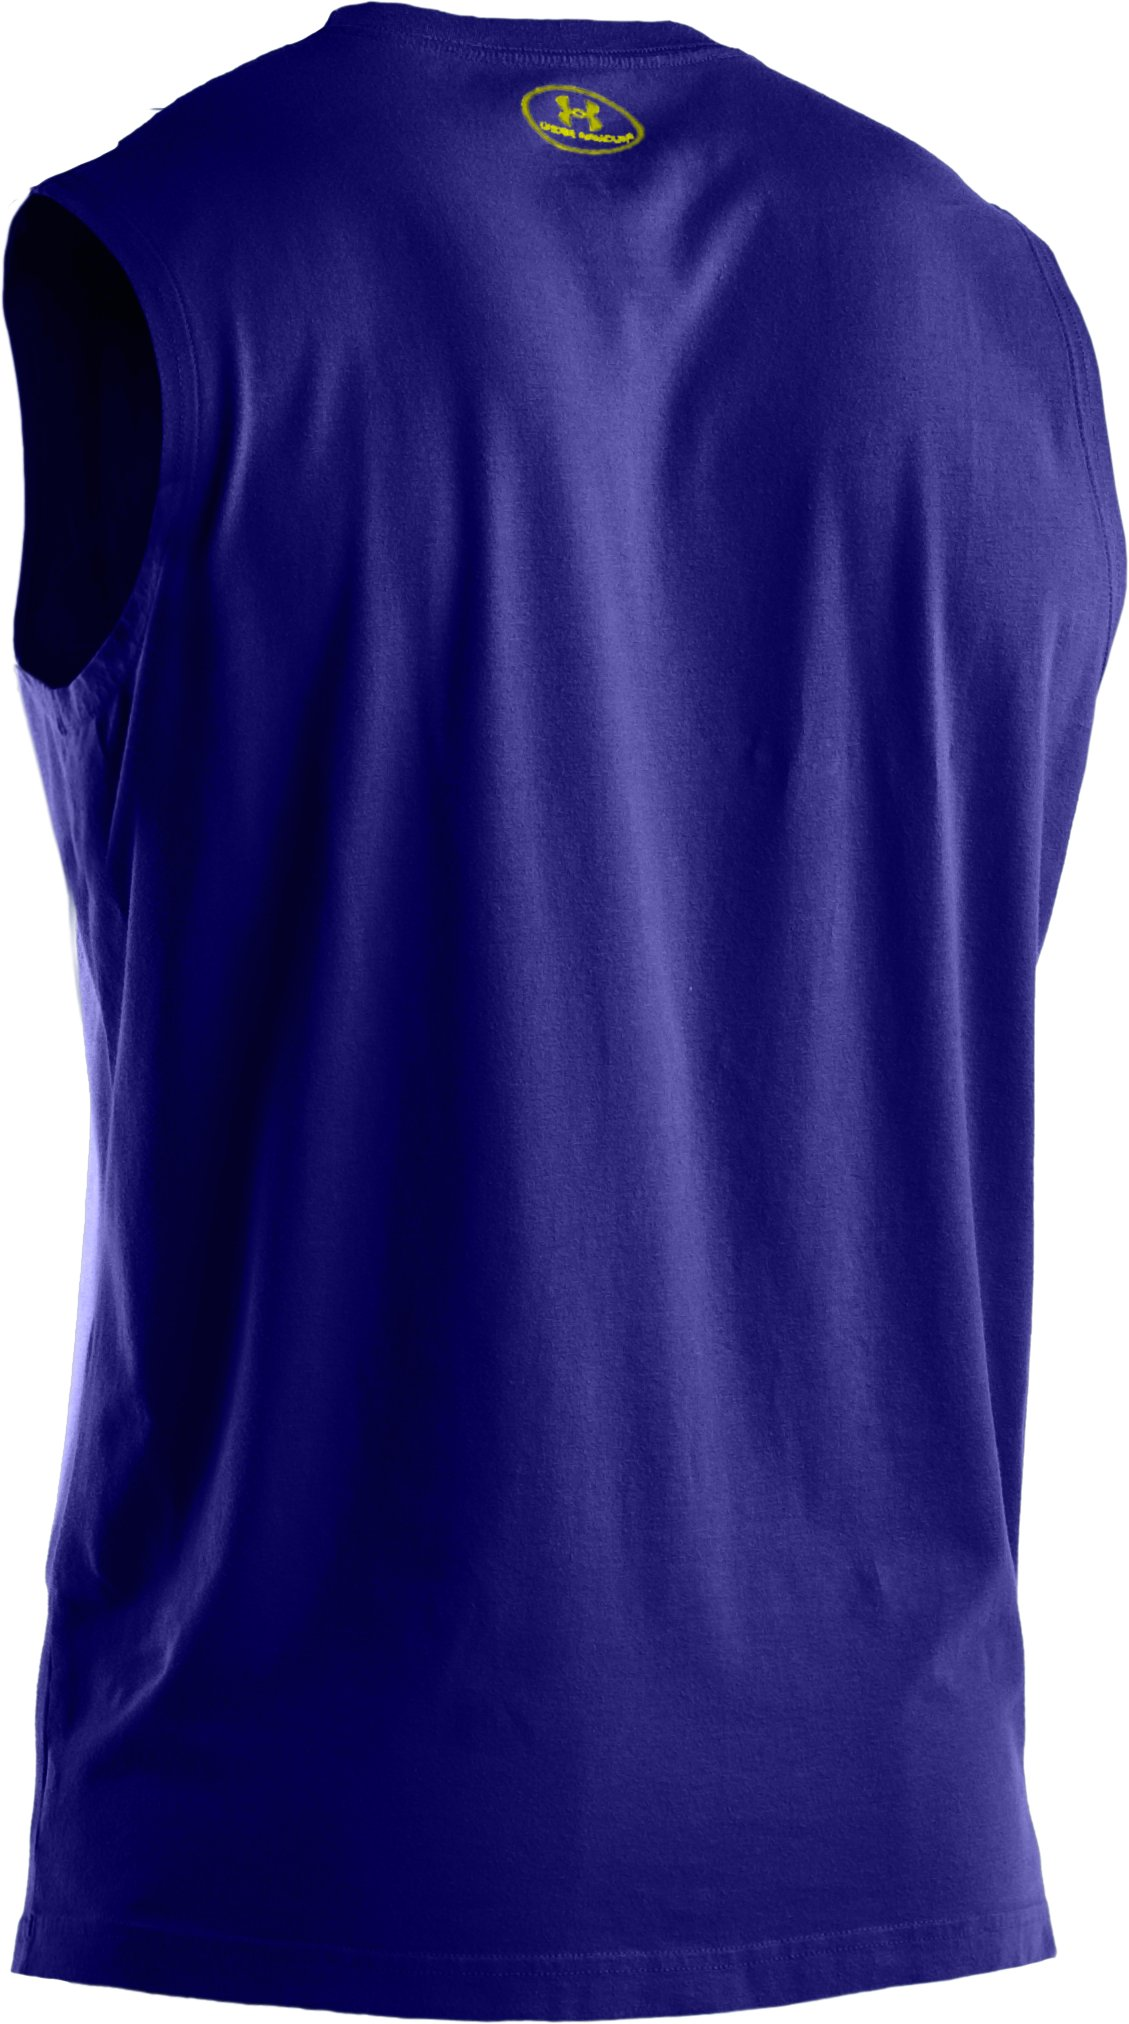 Men's Charged Cotton® Sleeveless T-shirt, Caspian, undefined